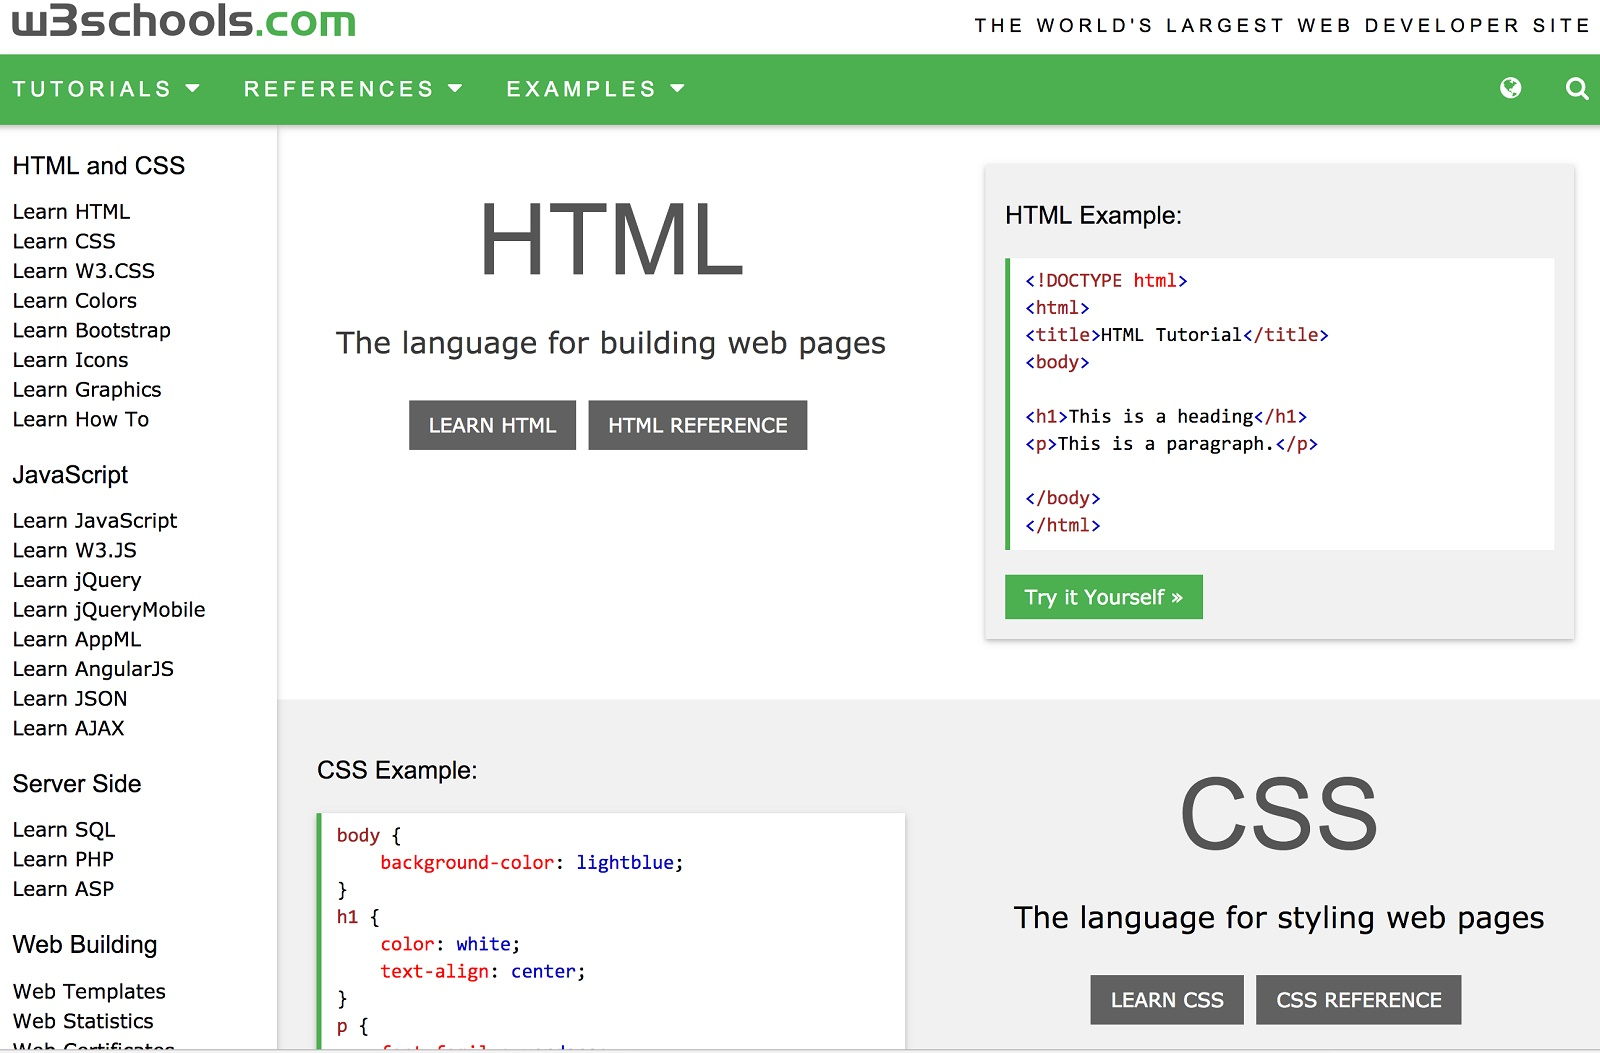 7 W3Schools Online Tutorials On Programming Languages